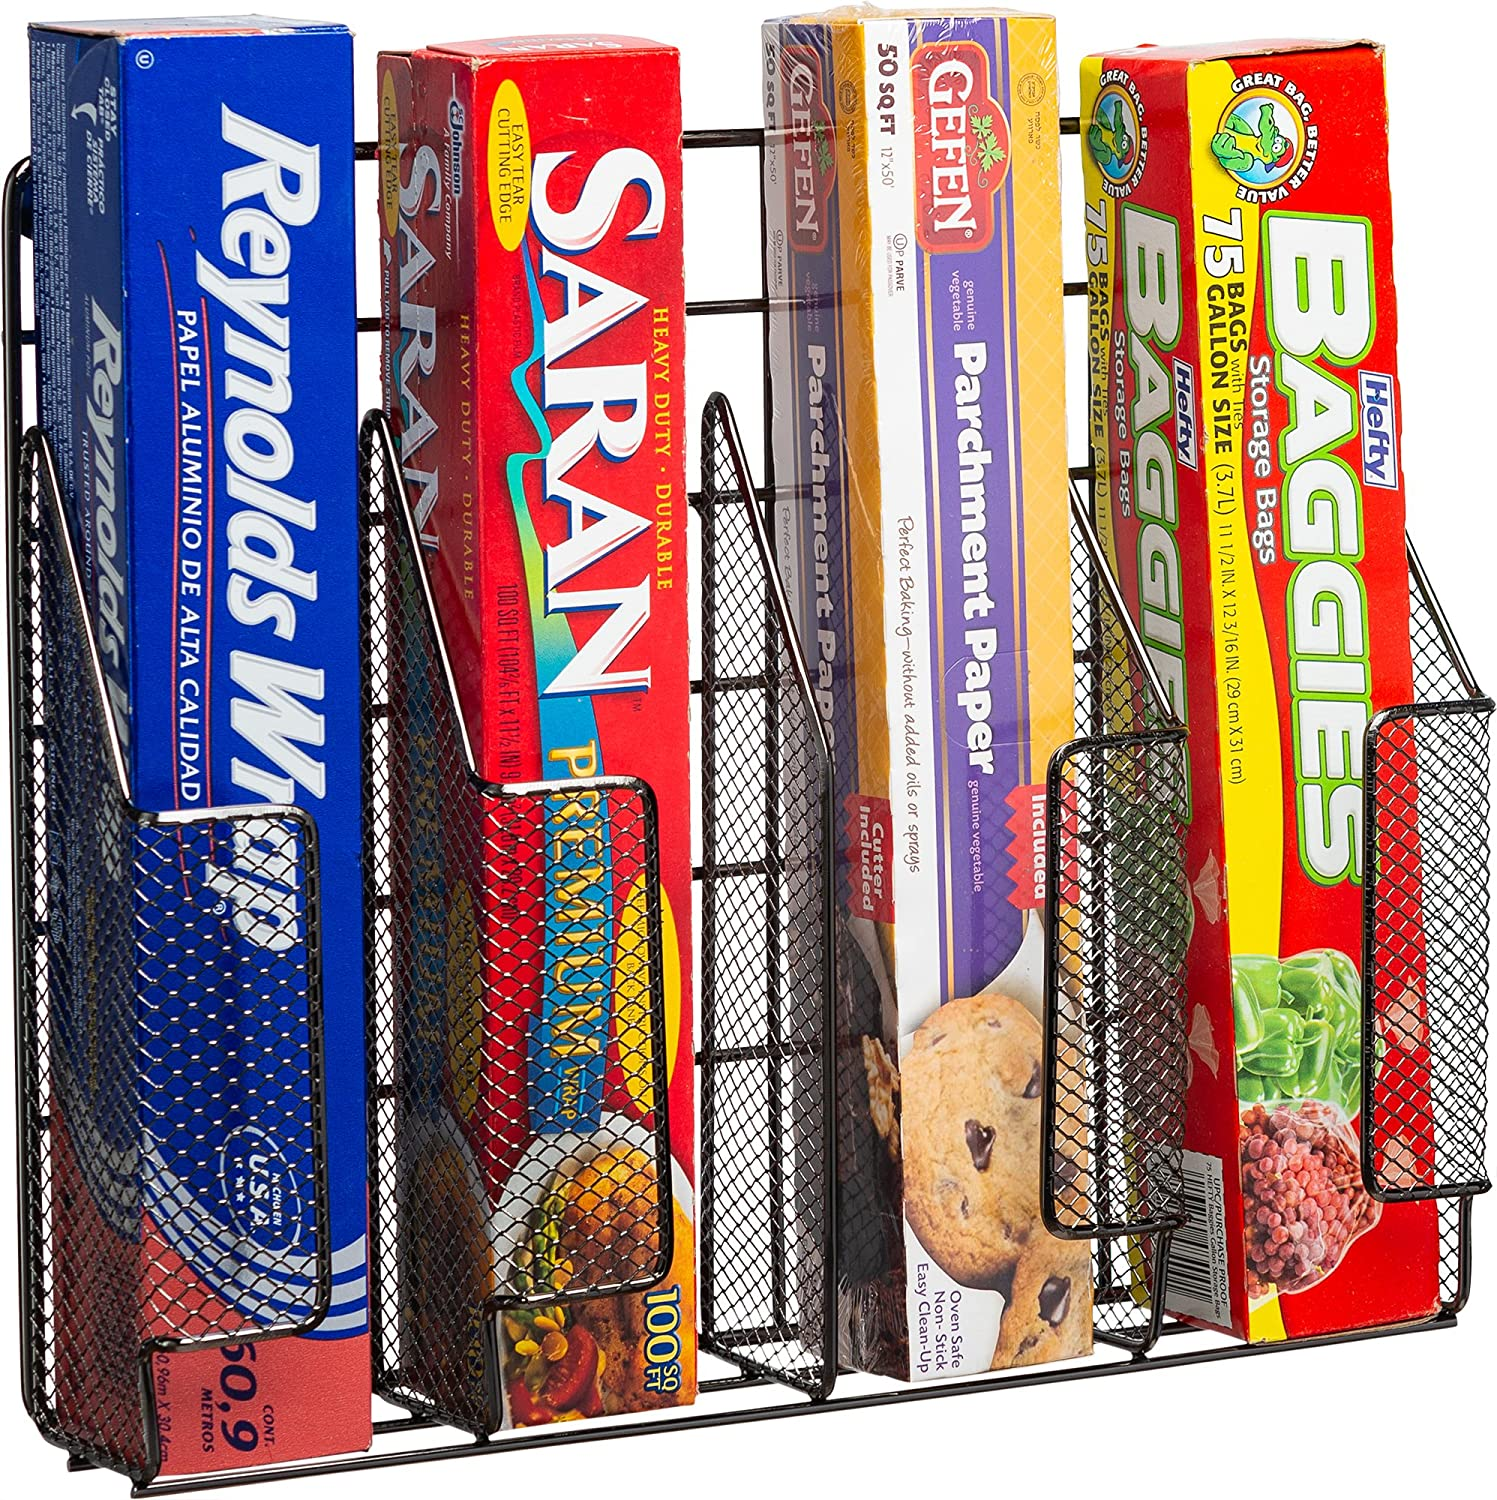 Home Basics Stainless Steel Rust Resistant Wrap Organizer, Great for Food Storage Bags, Silver foil, Wax Paper, Sandwich Bags, Plastic wrap- Mounts to Cabinet Door or Wall. Onyx/Black Finish